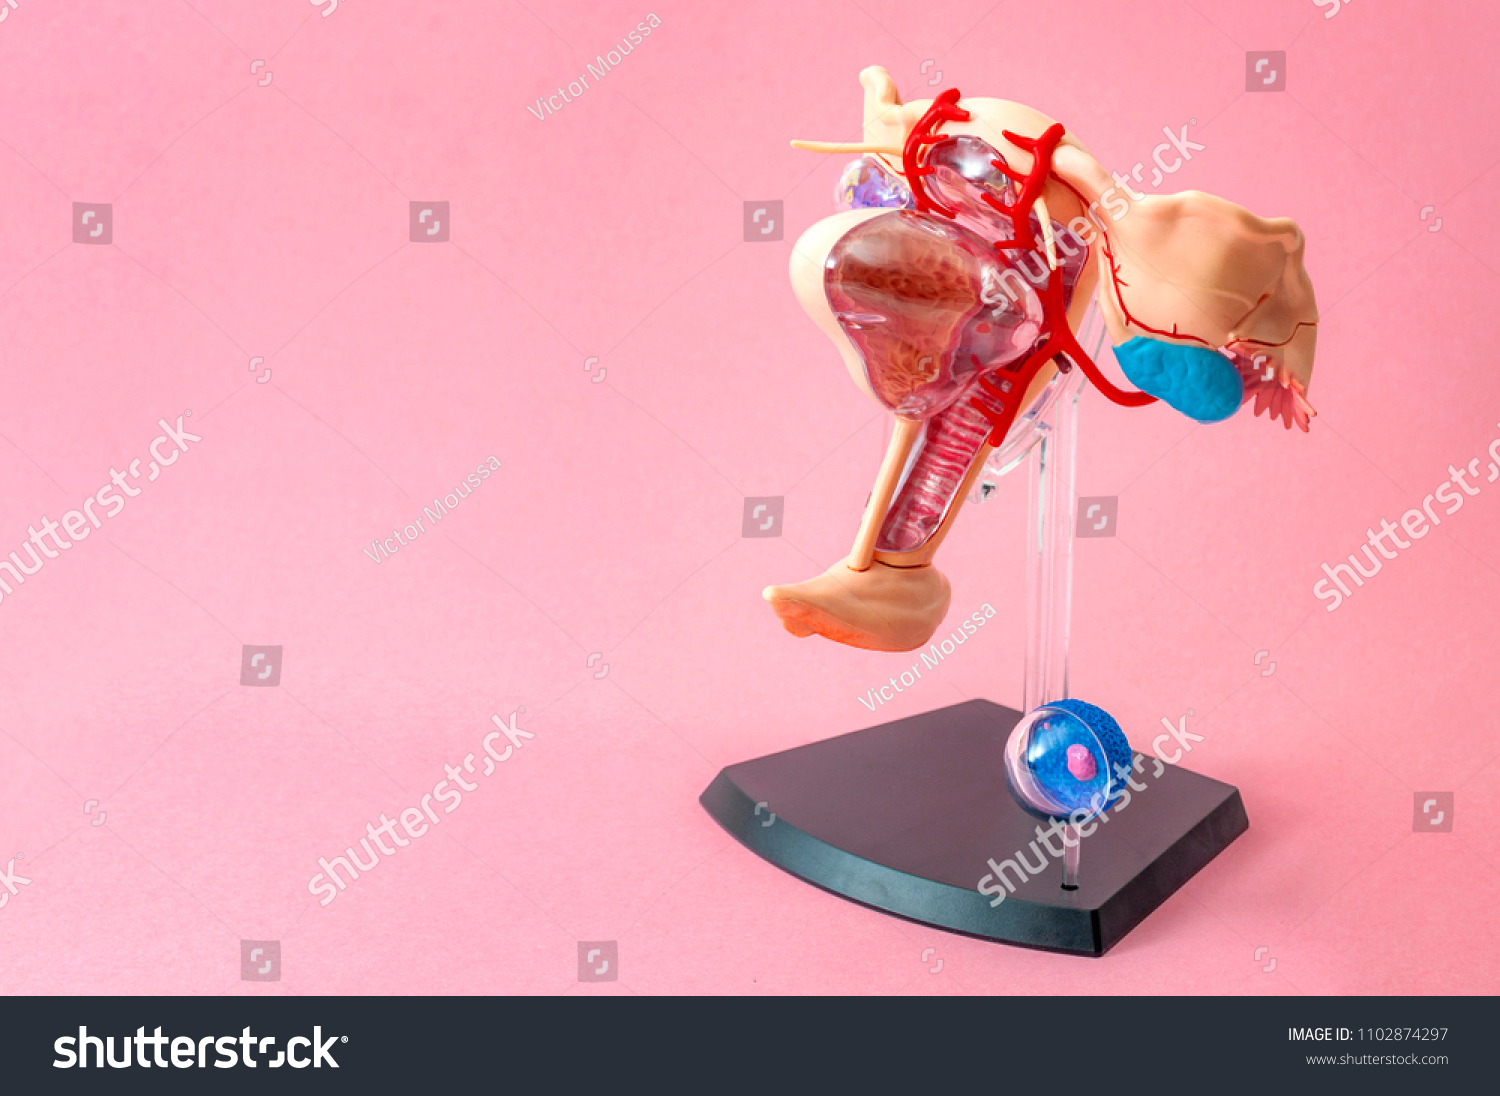 Female Anatomy Women Reproductive System Concept Stock Photo Image